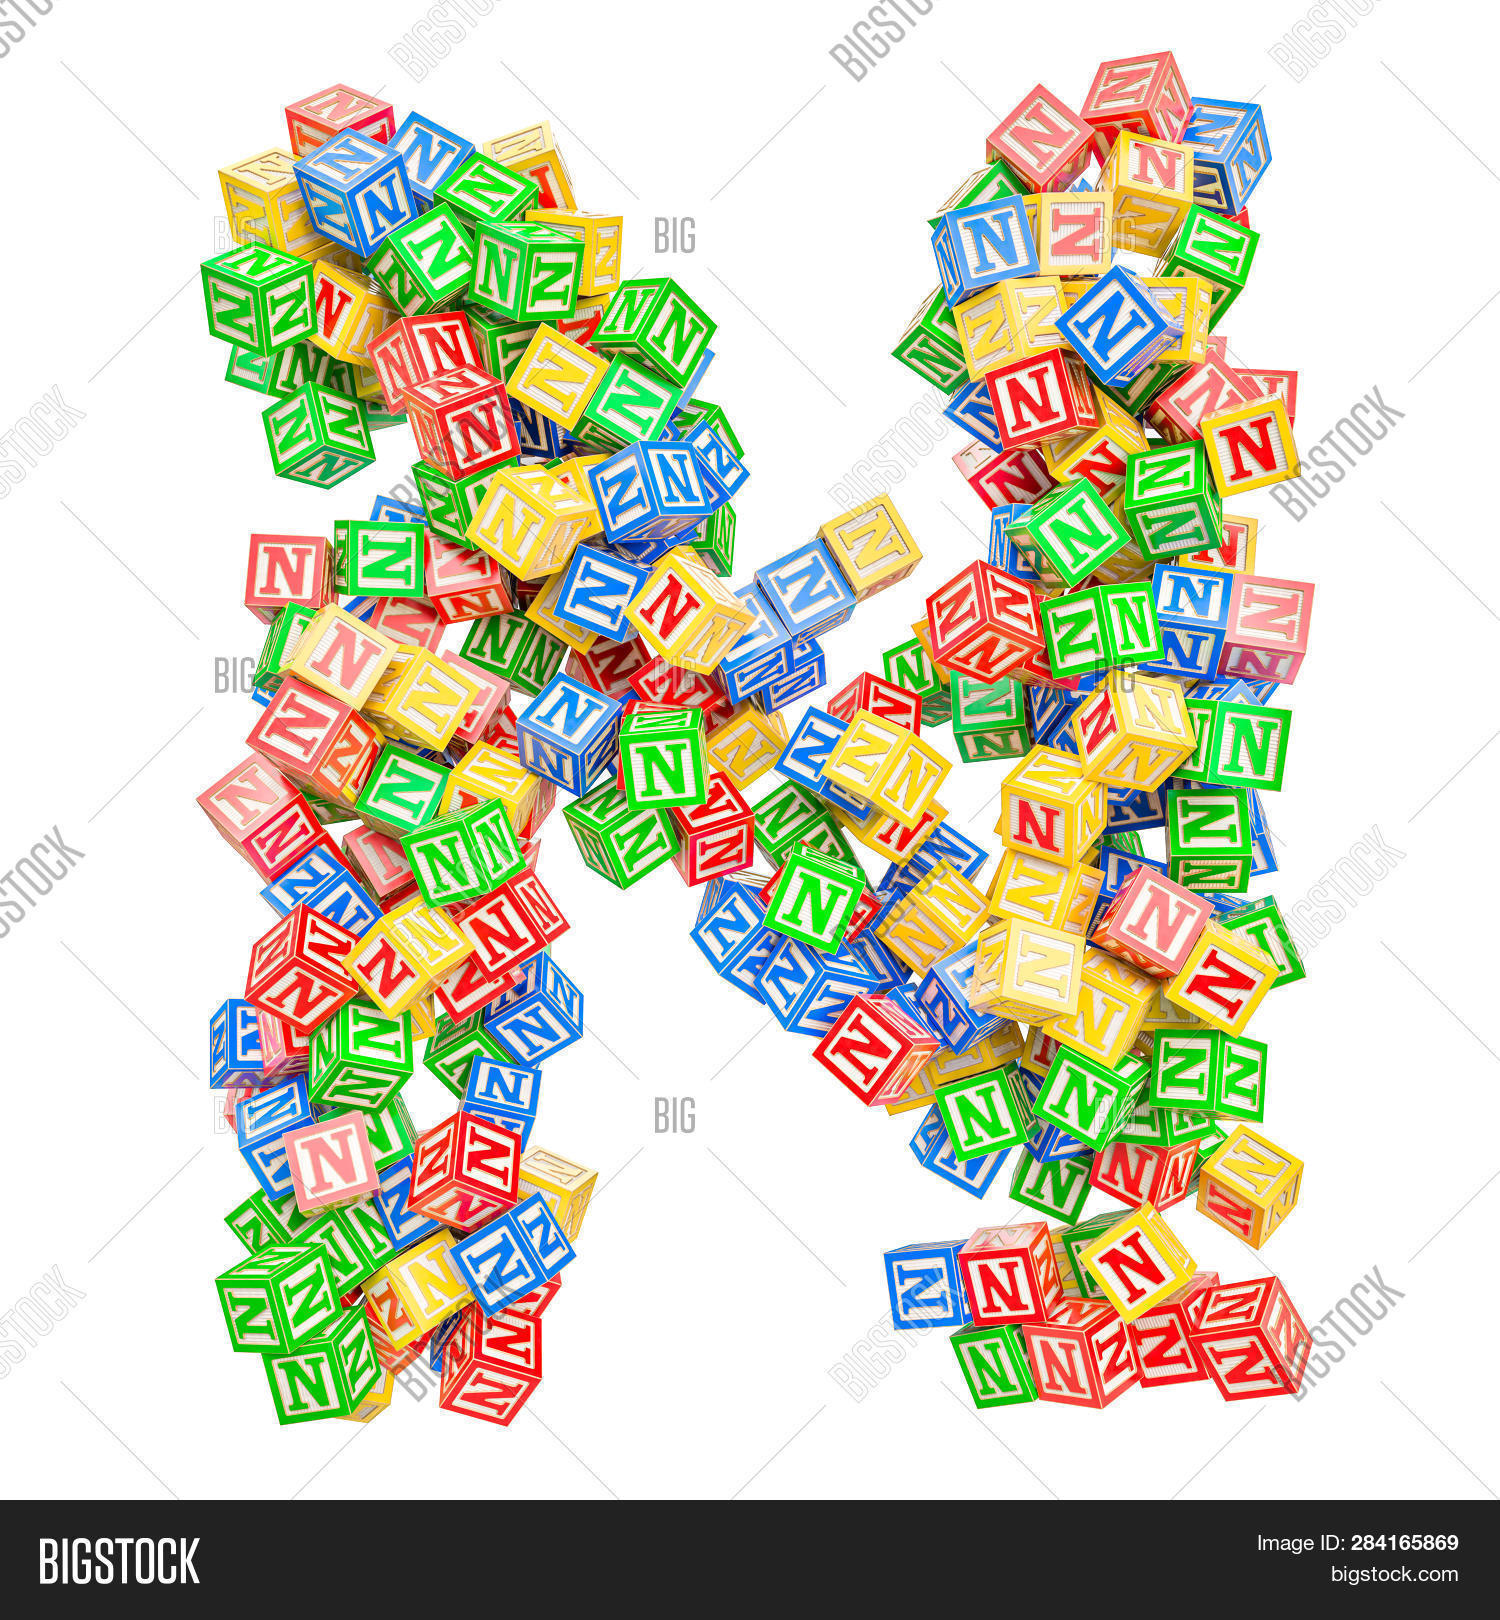 Letter N, Abc Alphabet Image & Photo (Free Trial) | Bigstock